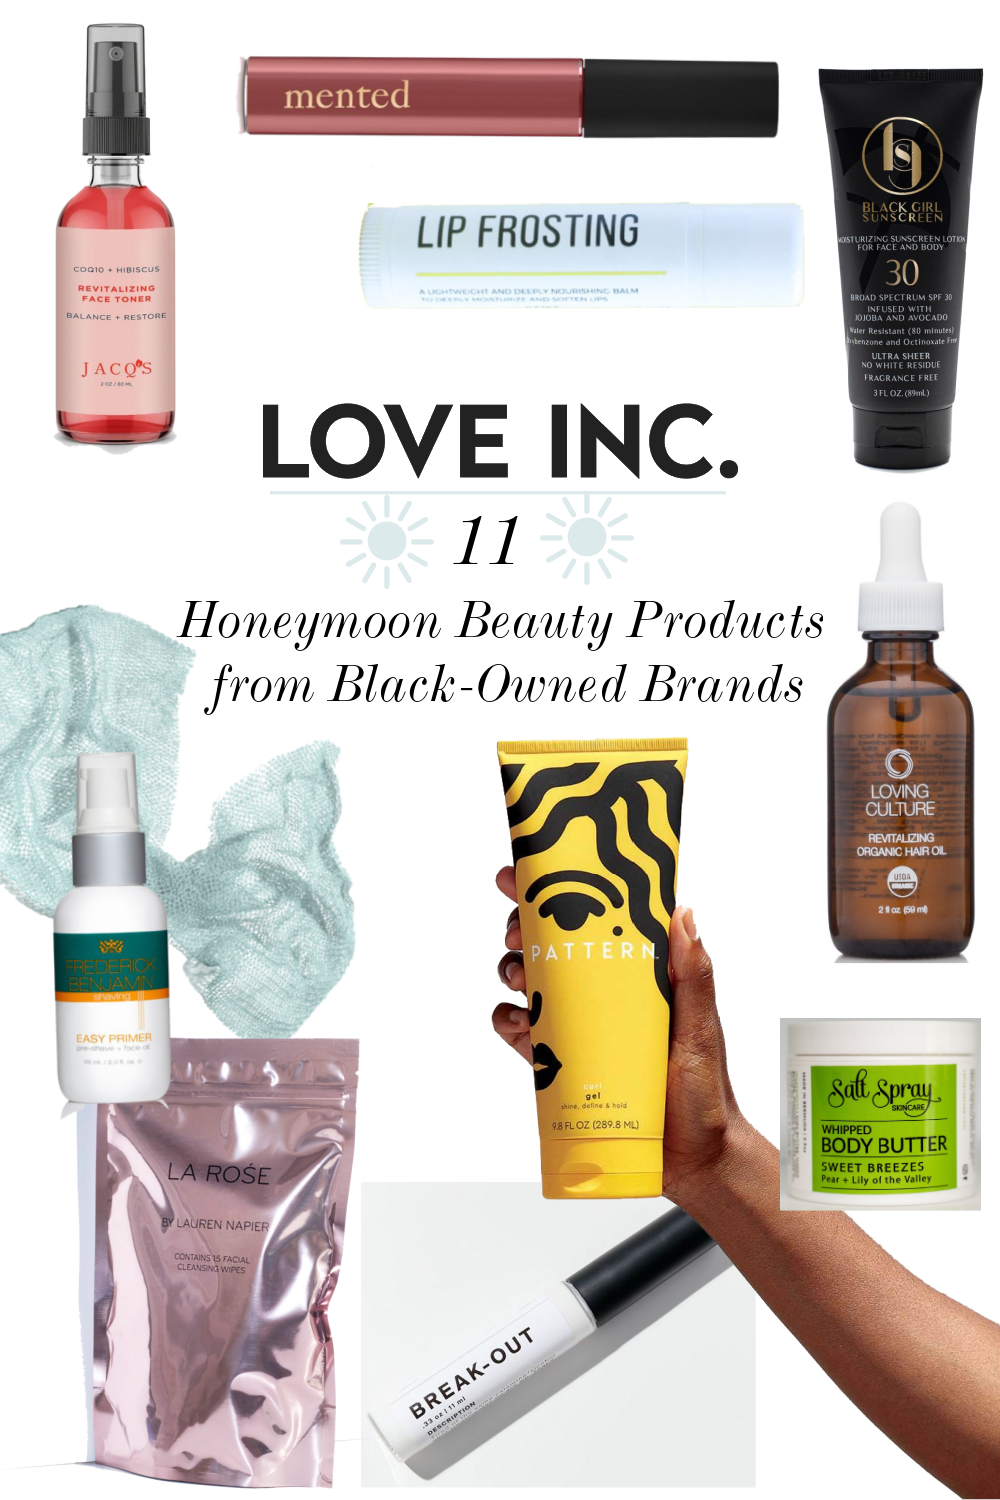 honeymoon-beauty-products-from-black-owned-brands